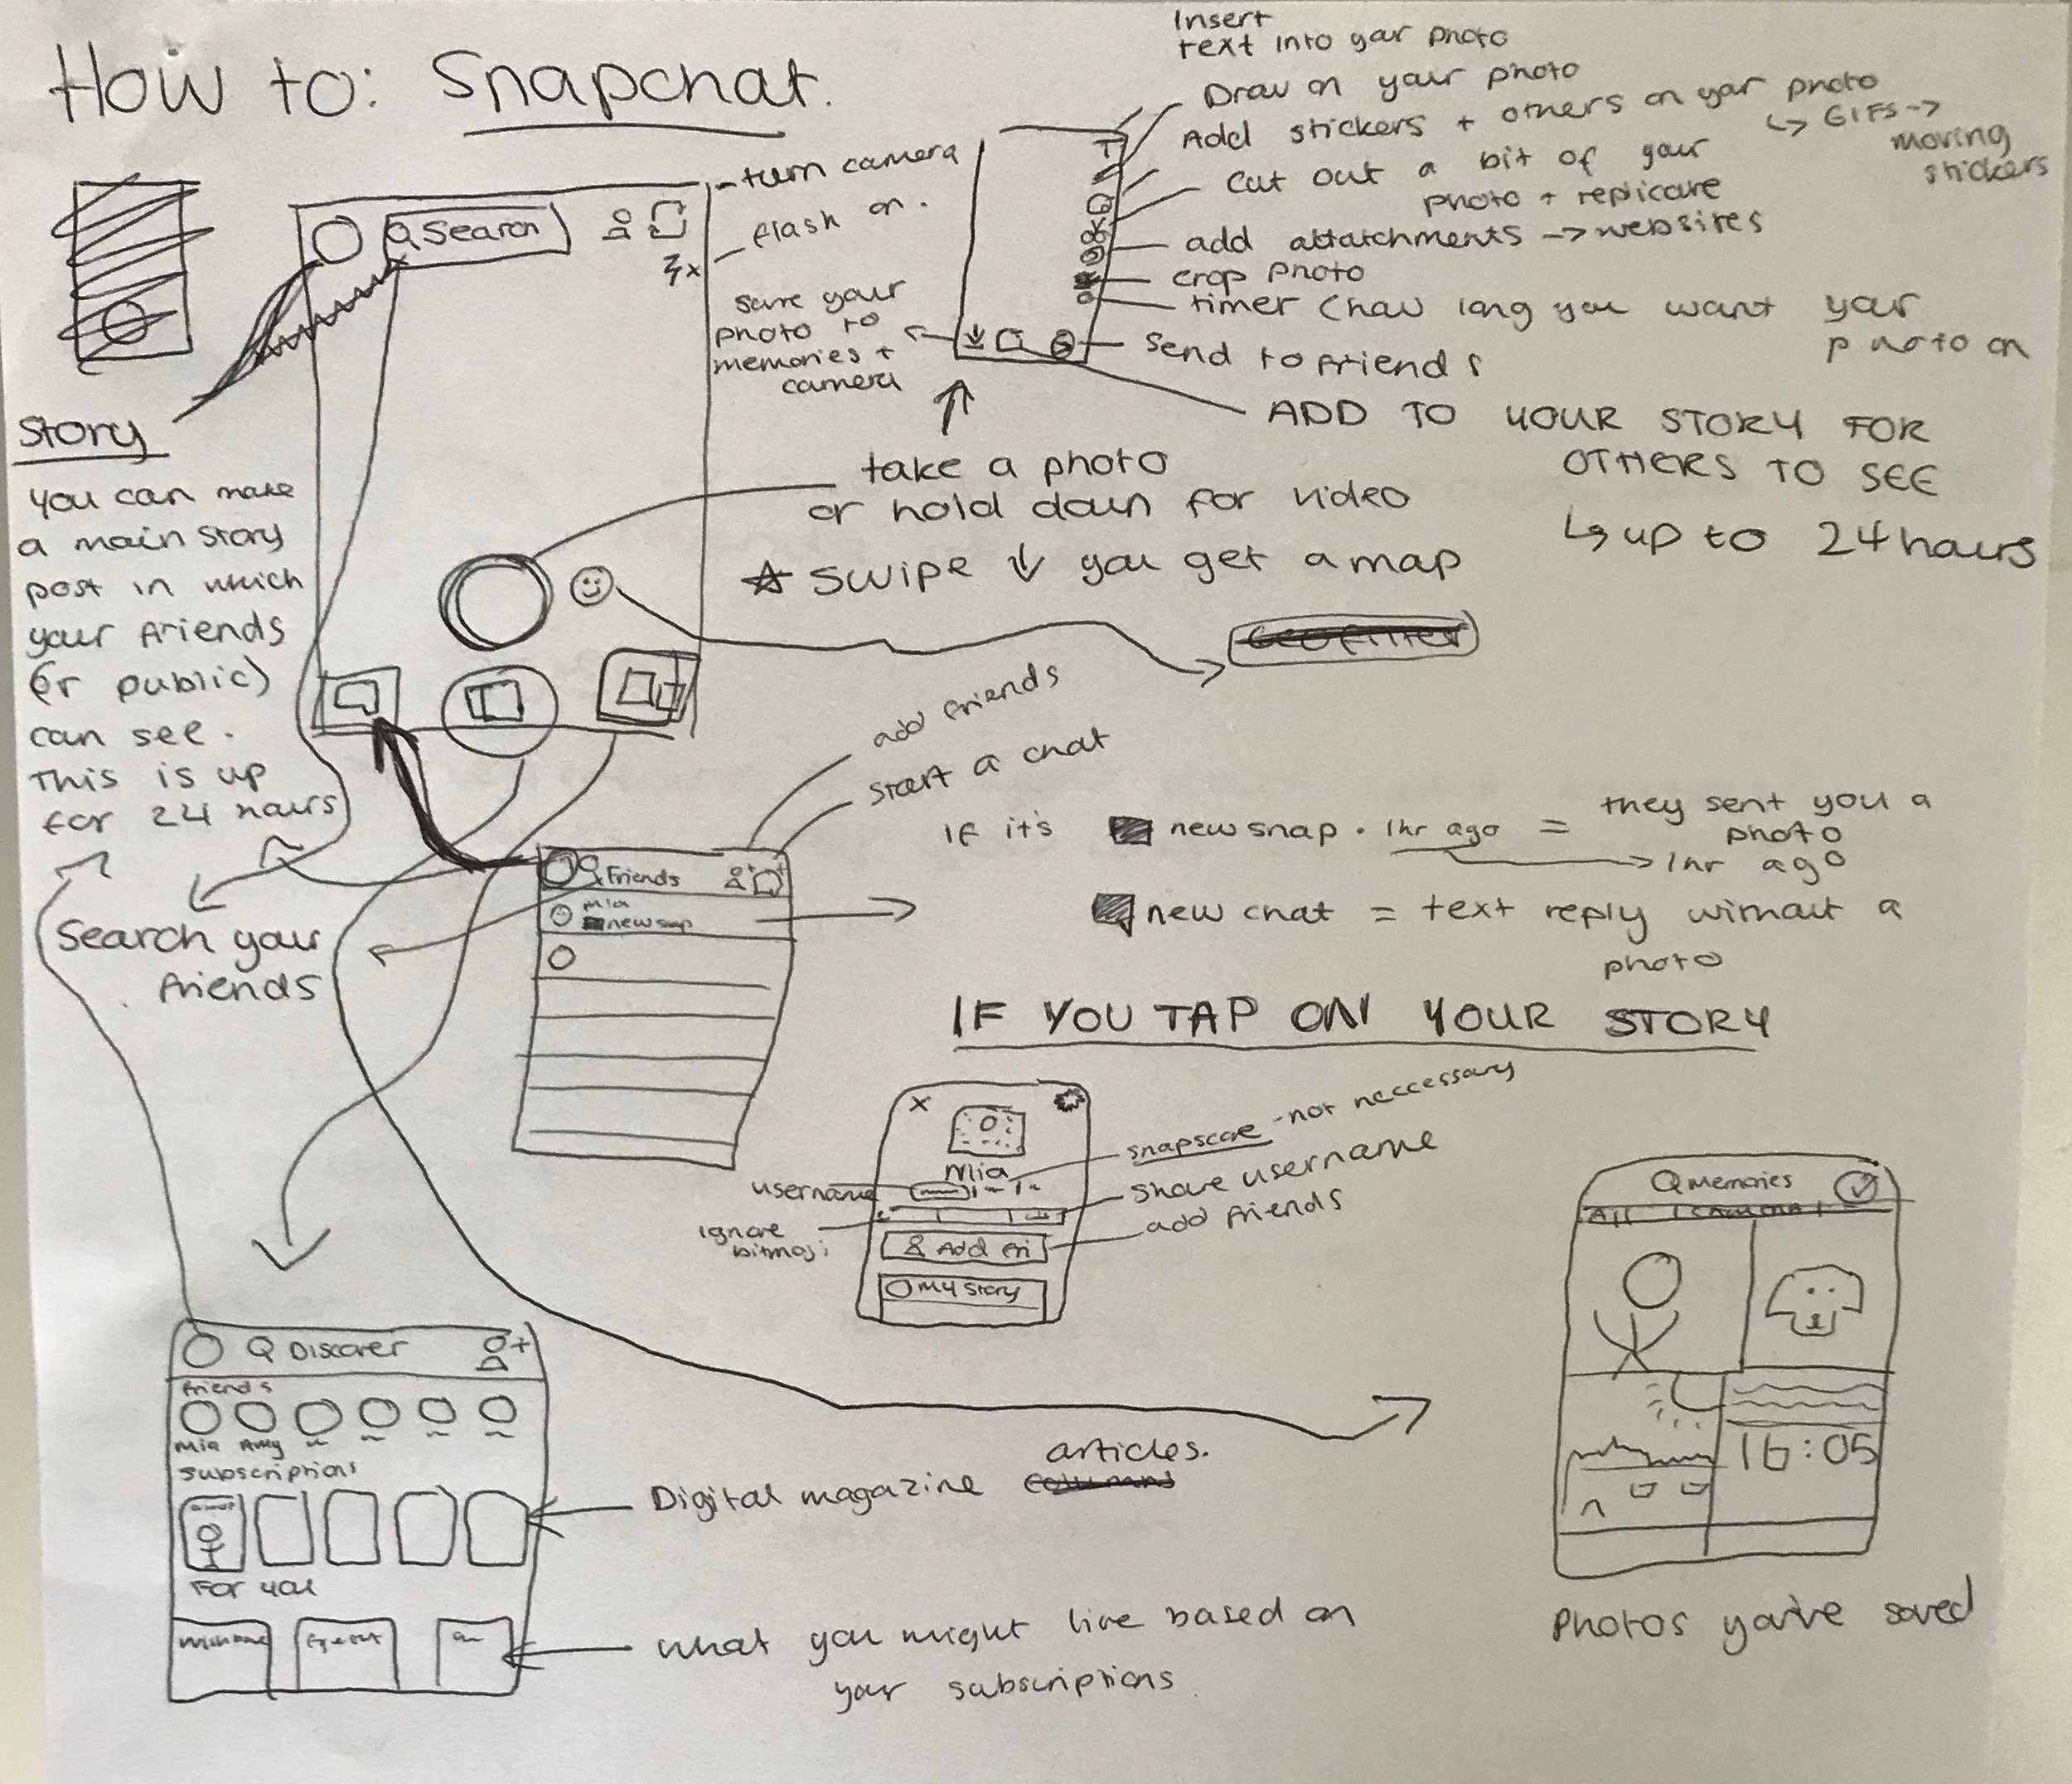 Hand drawn scamp of how to snapchat